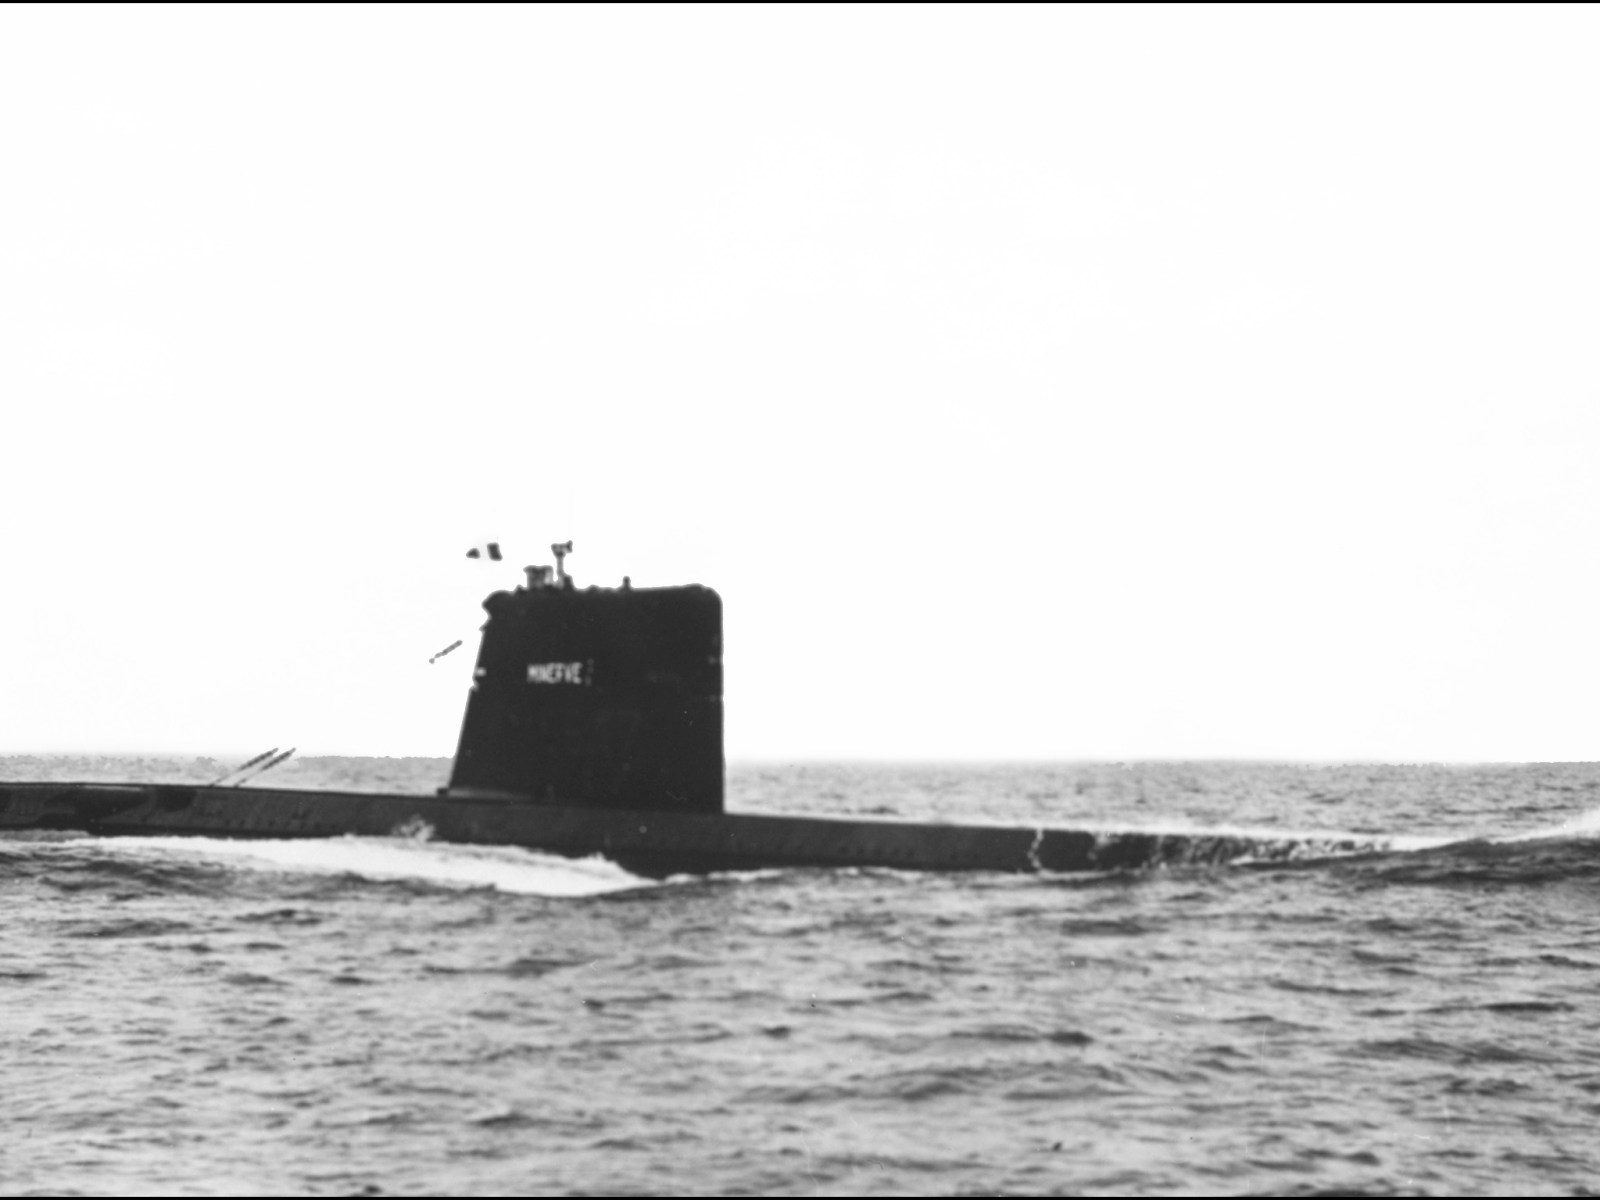 french submarine discovered after disappearing more than 50